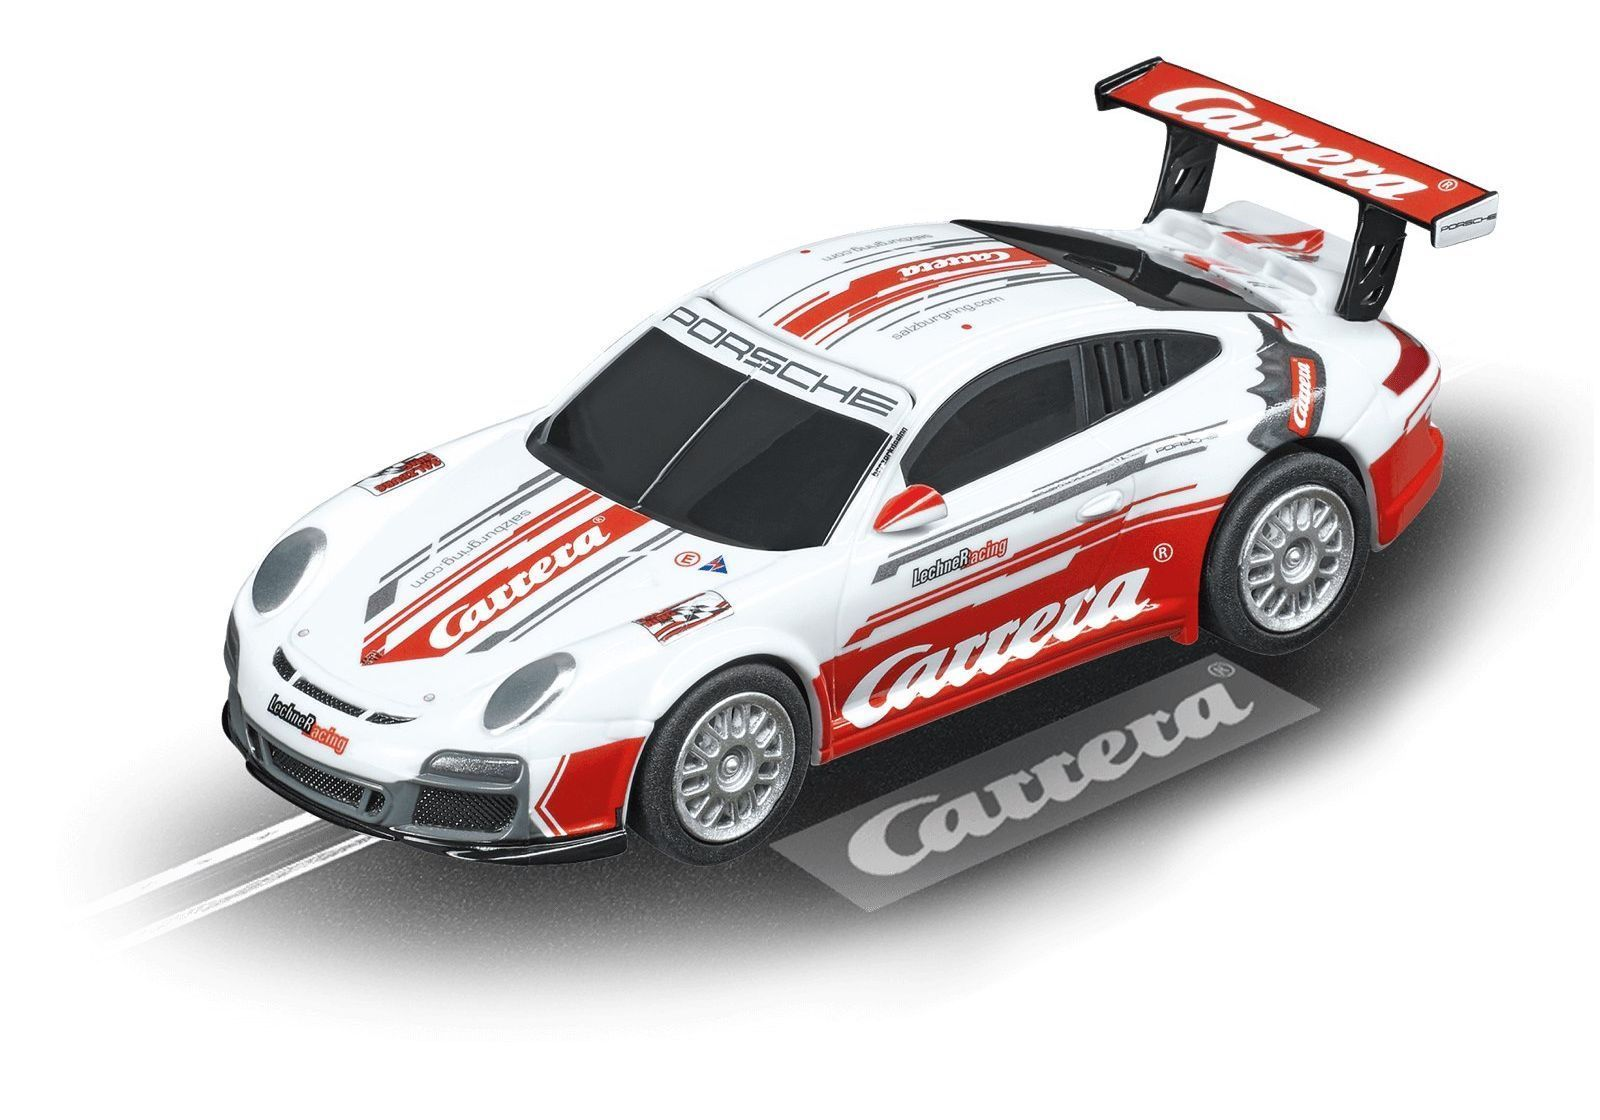 "картинка а/м Porsche GT3 Lechner Racing ""Carrera Race Taxi"", Carrera Digital 143 от магазина multi-race"